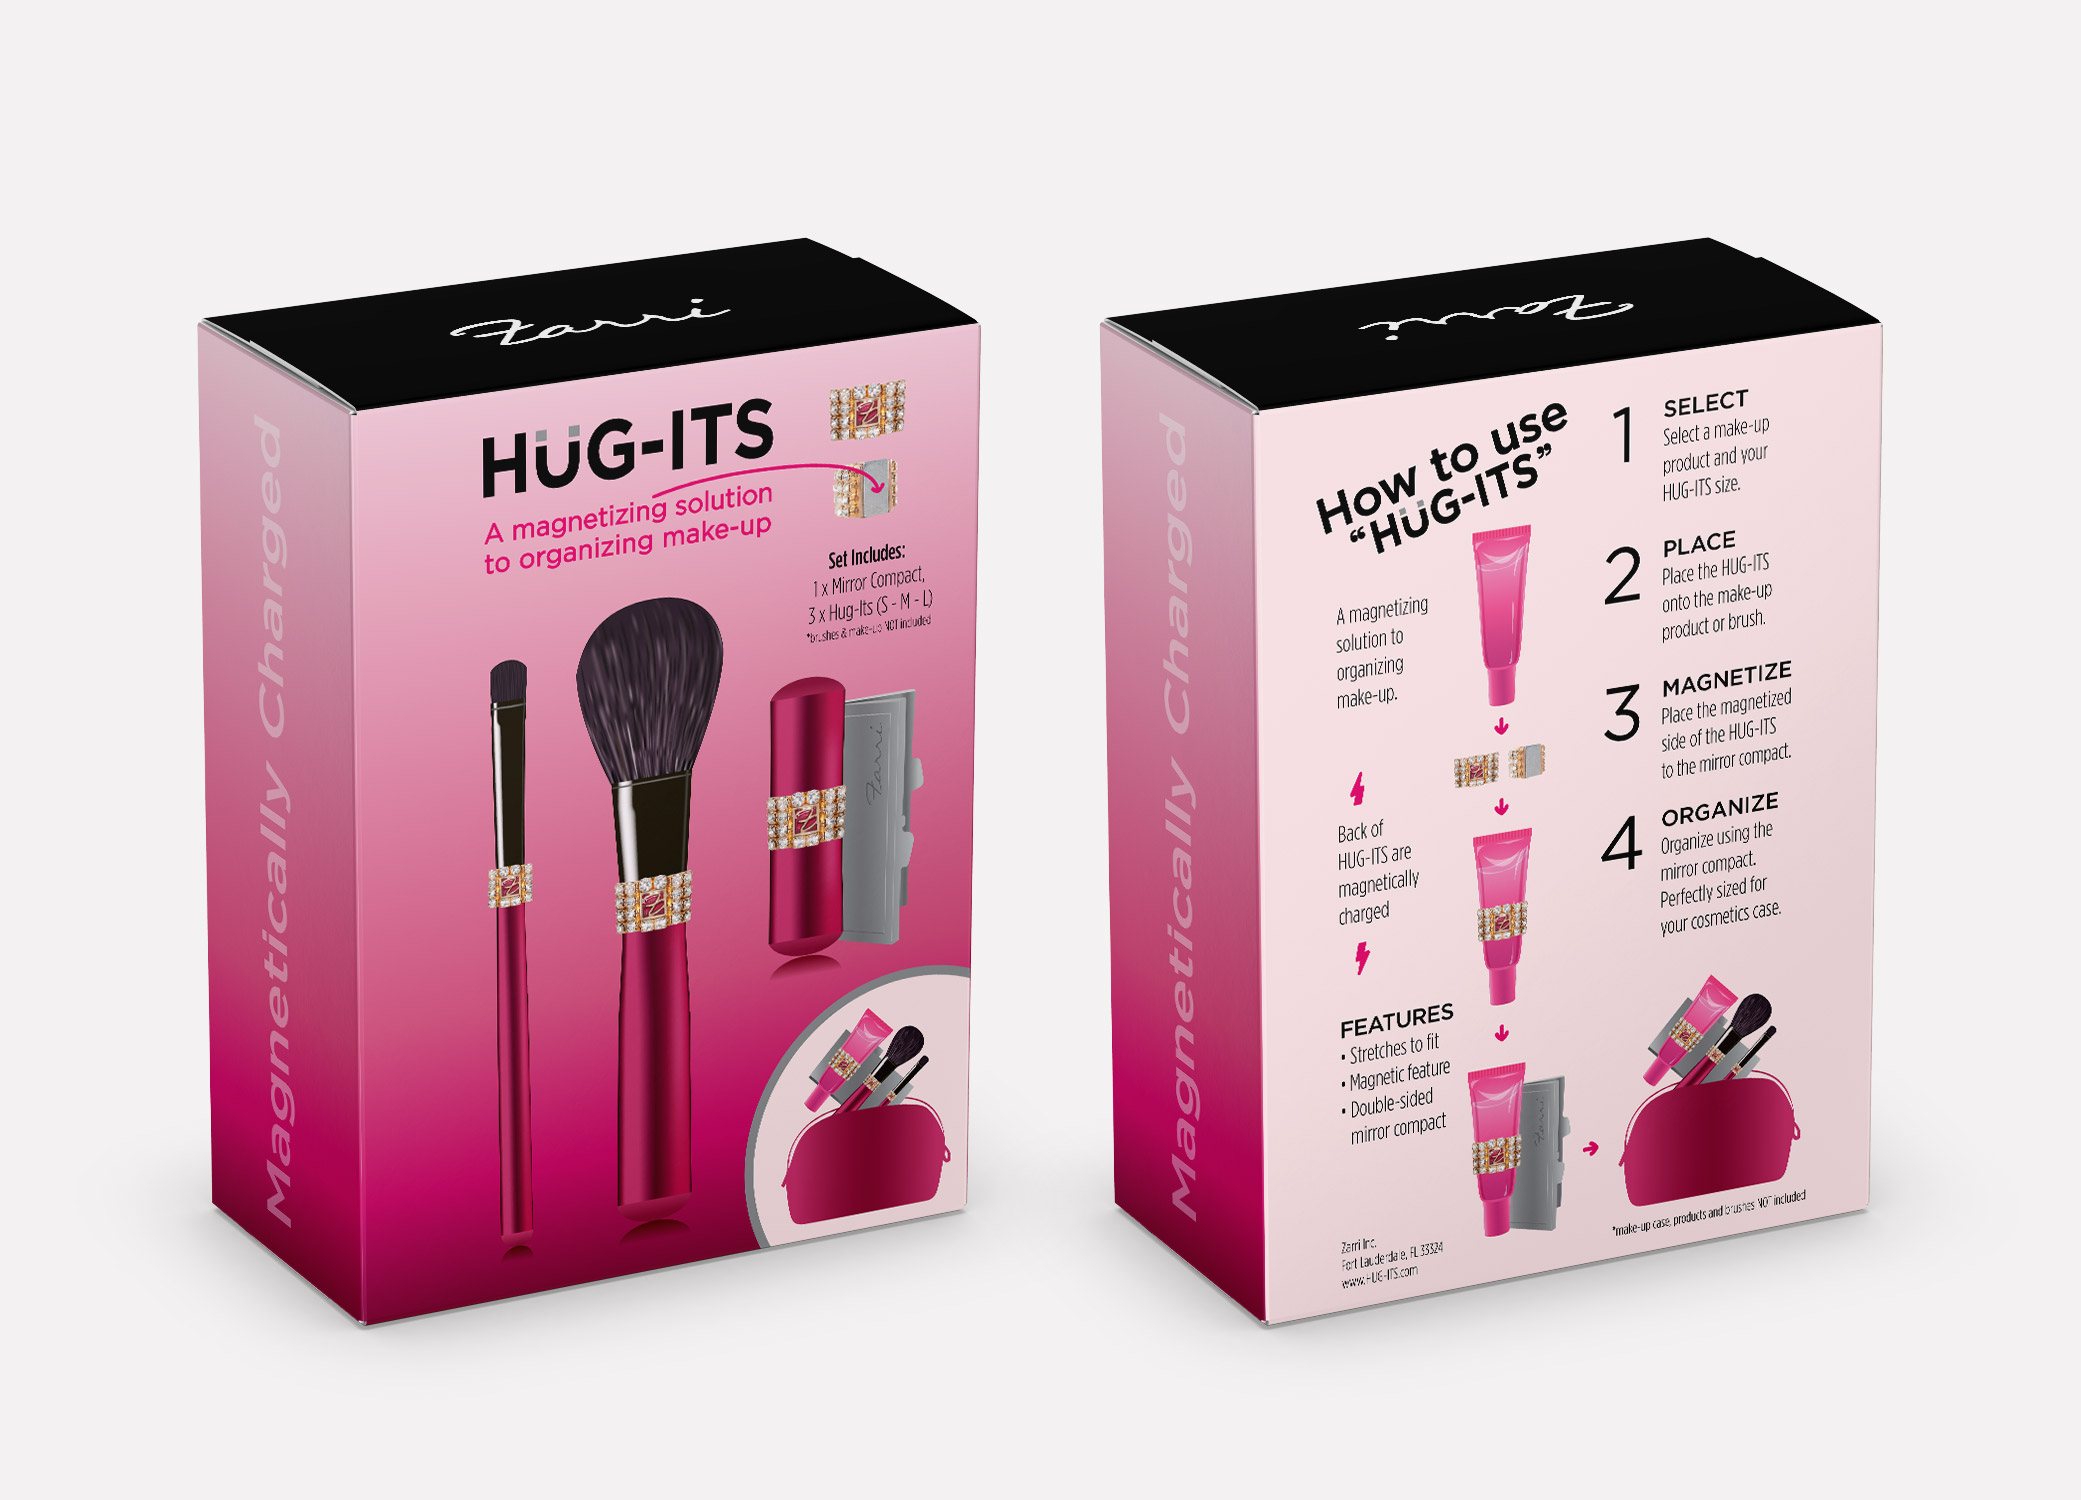 Hug-its cosmetic product packaging design box showing front and back of magenta and black with directions for how to use on the back.